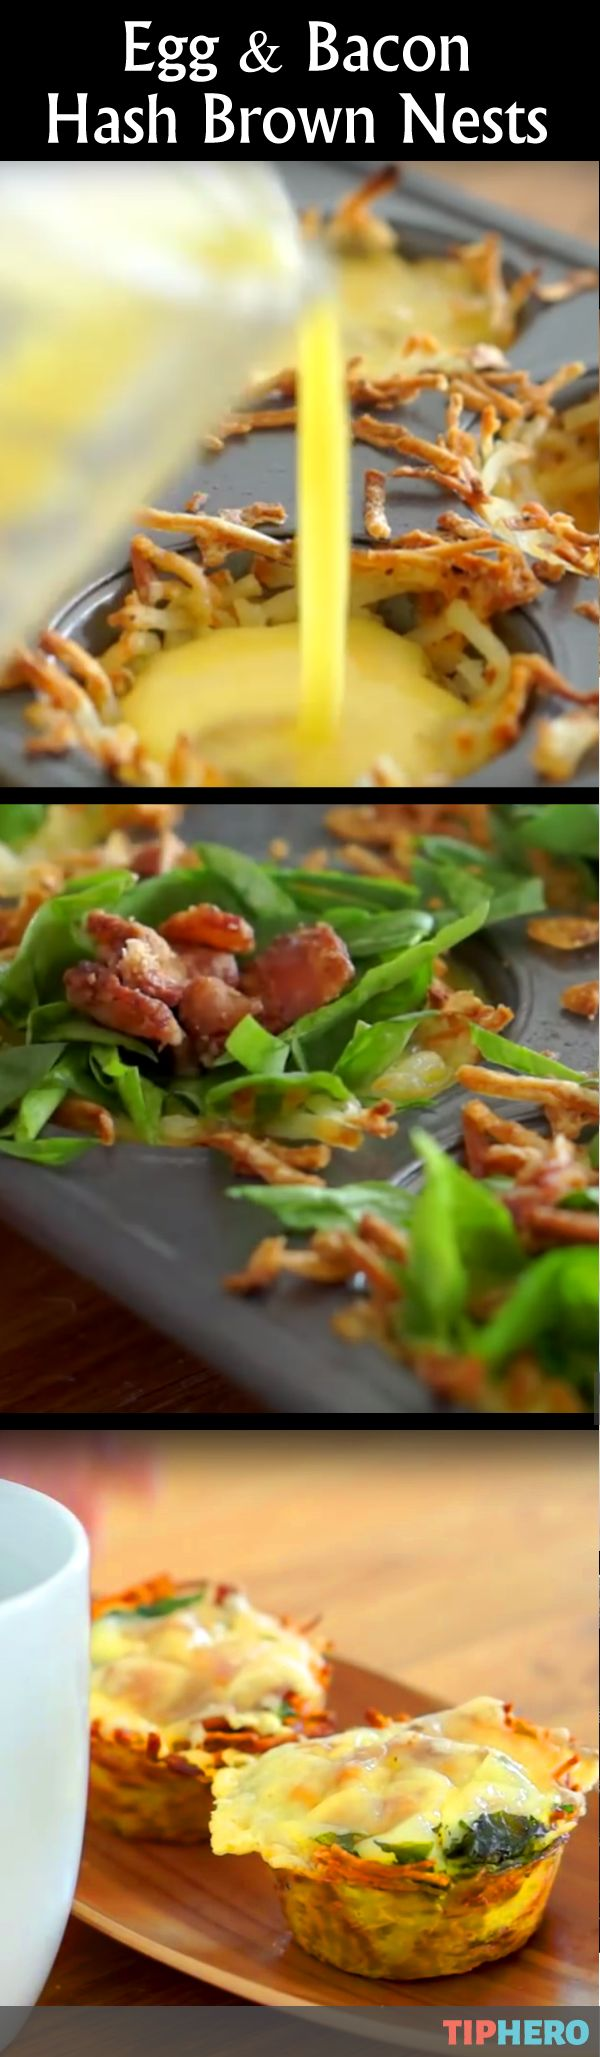 Egg & Bacon Hash Brown Nest Recipe | This adorable breakfast treat packs a lot of flavor in one little muffin tin. Potatoes, eggs, cheese, spinach and bacon combine to make for a tasty way to start your day. Perfect for brunch!